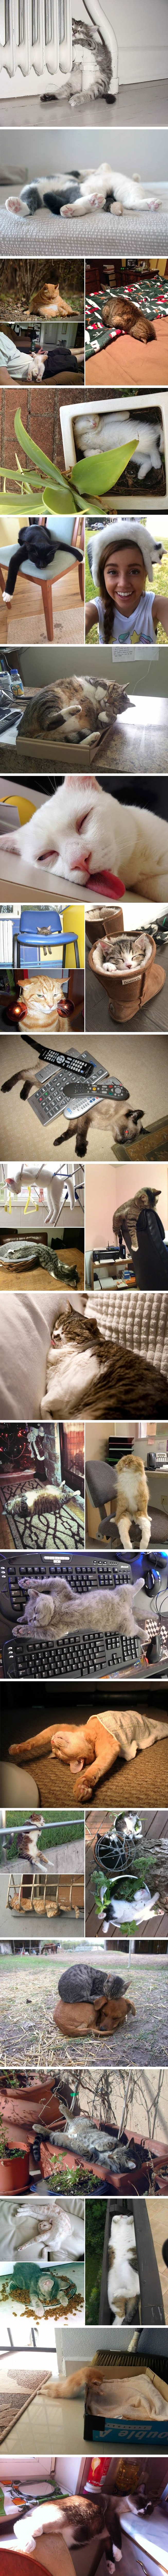 tired-cats-compilation-funny